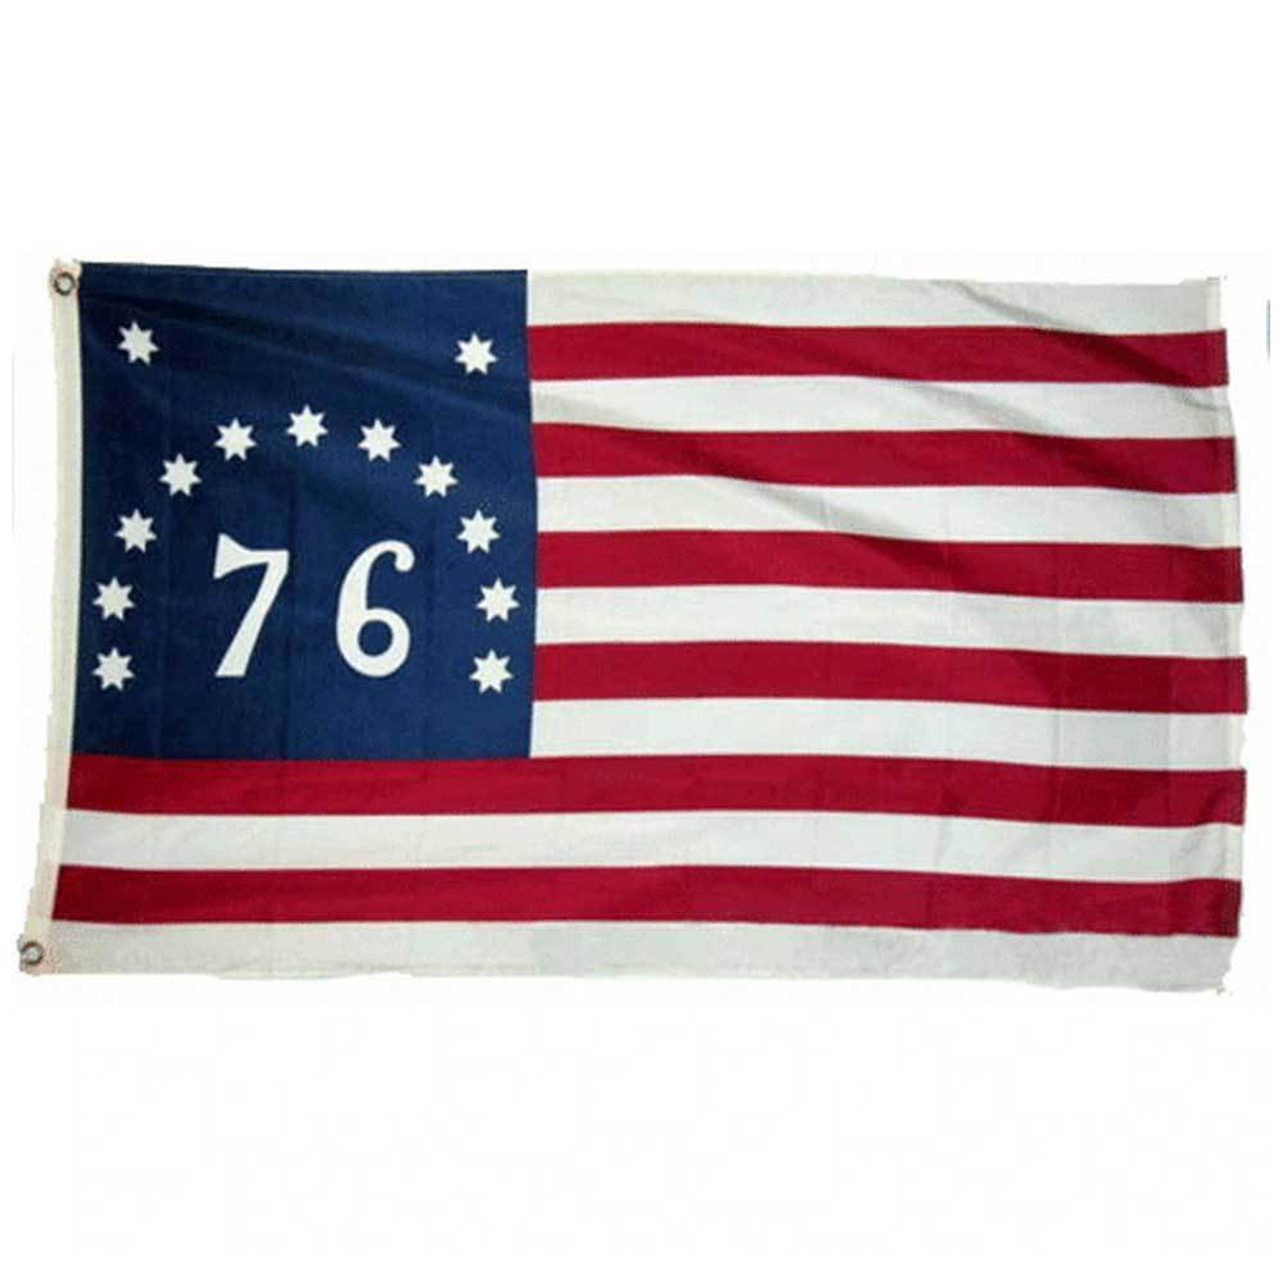 """The Bennington flag feature 13 alternating stripes of white and red with a large blue canton in the top left corner with 11 6-pointed white stars arranged in an arc with 2 additional stars above. Inside the arc is white text reading """"76"""". On the left of the flag is a durable canvas header with brass grommets for attaching to a flagpole."""